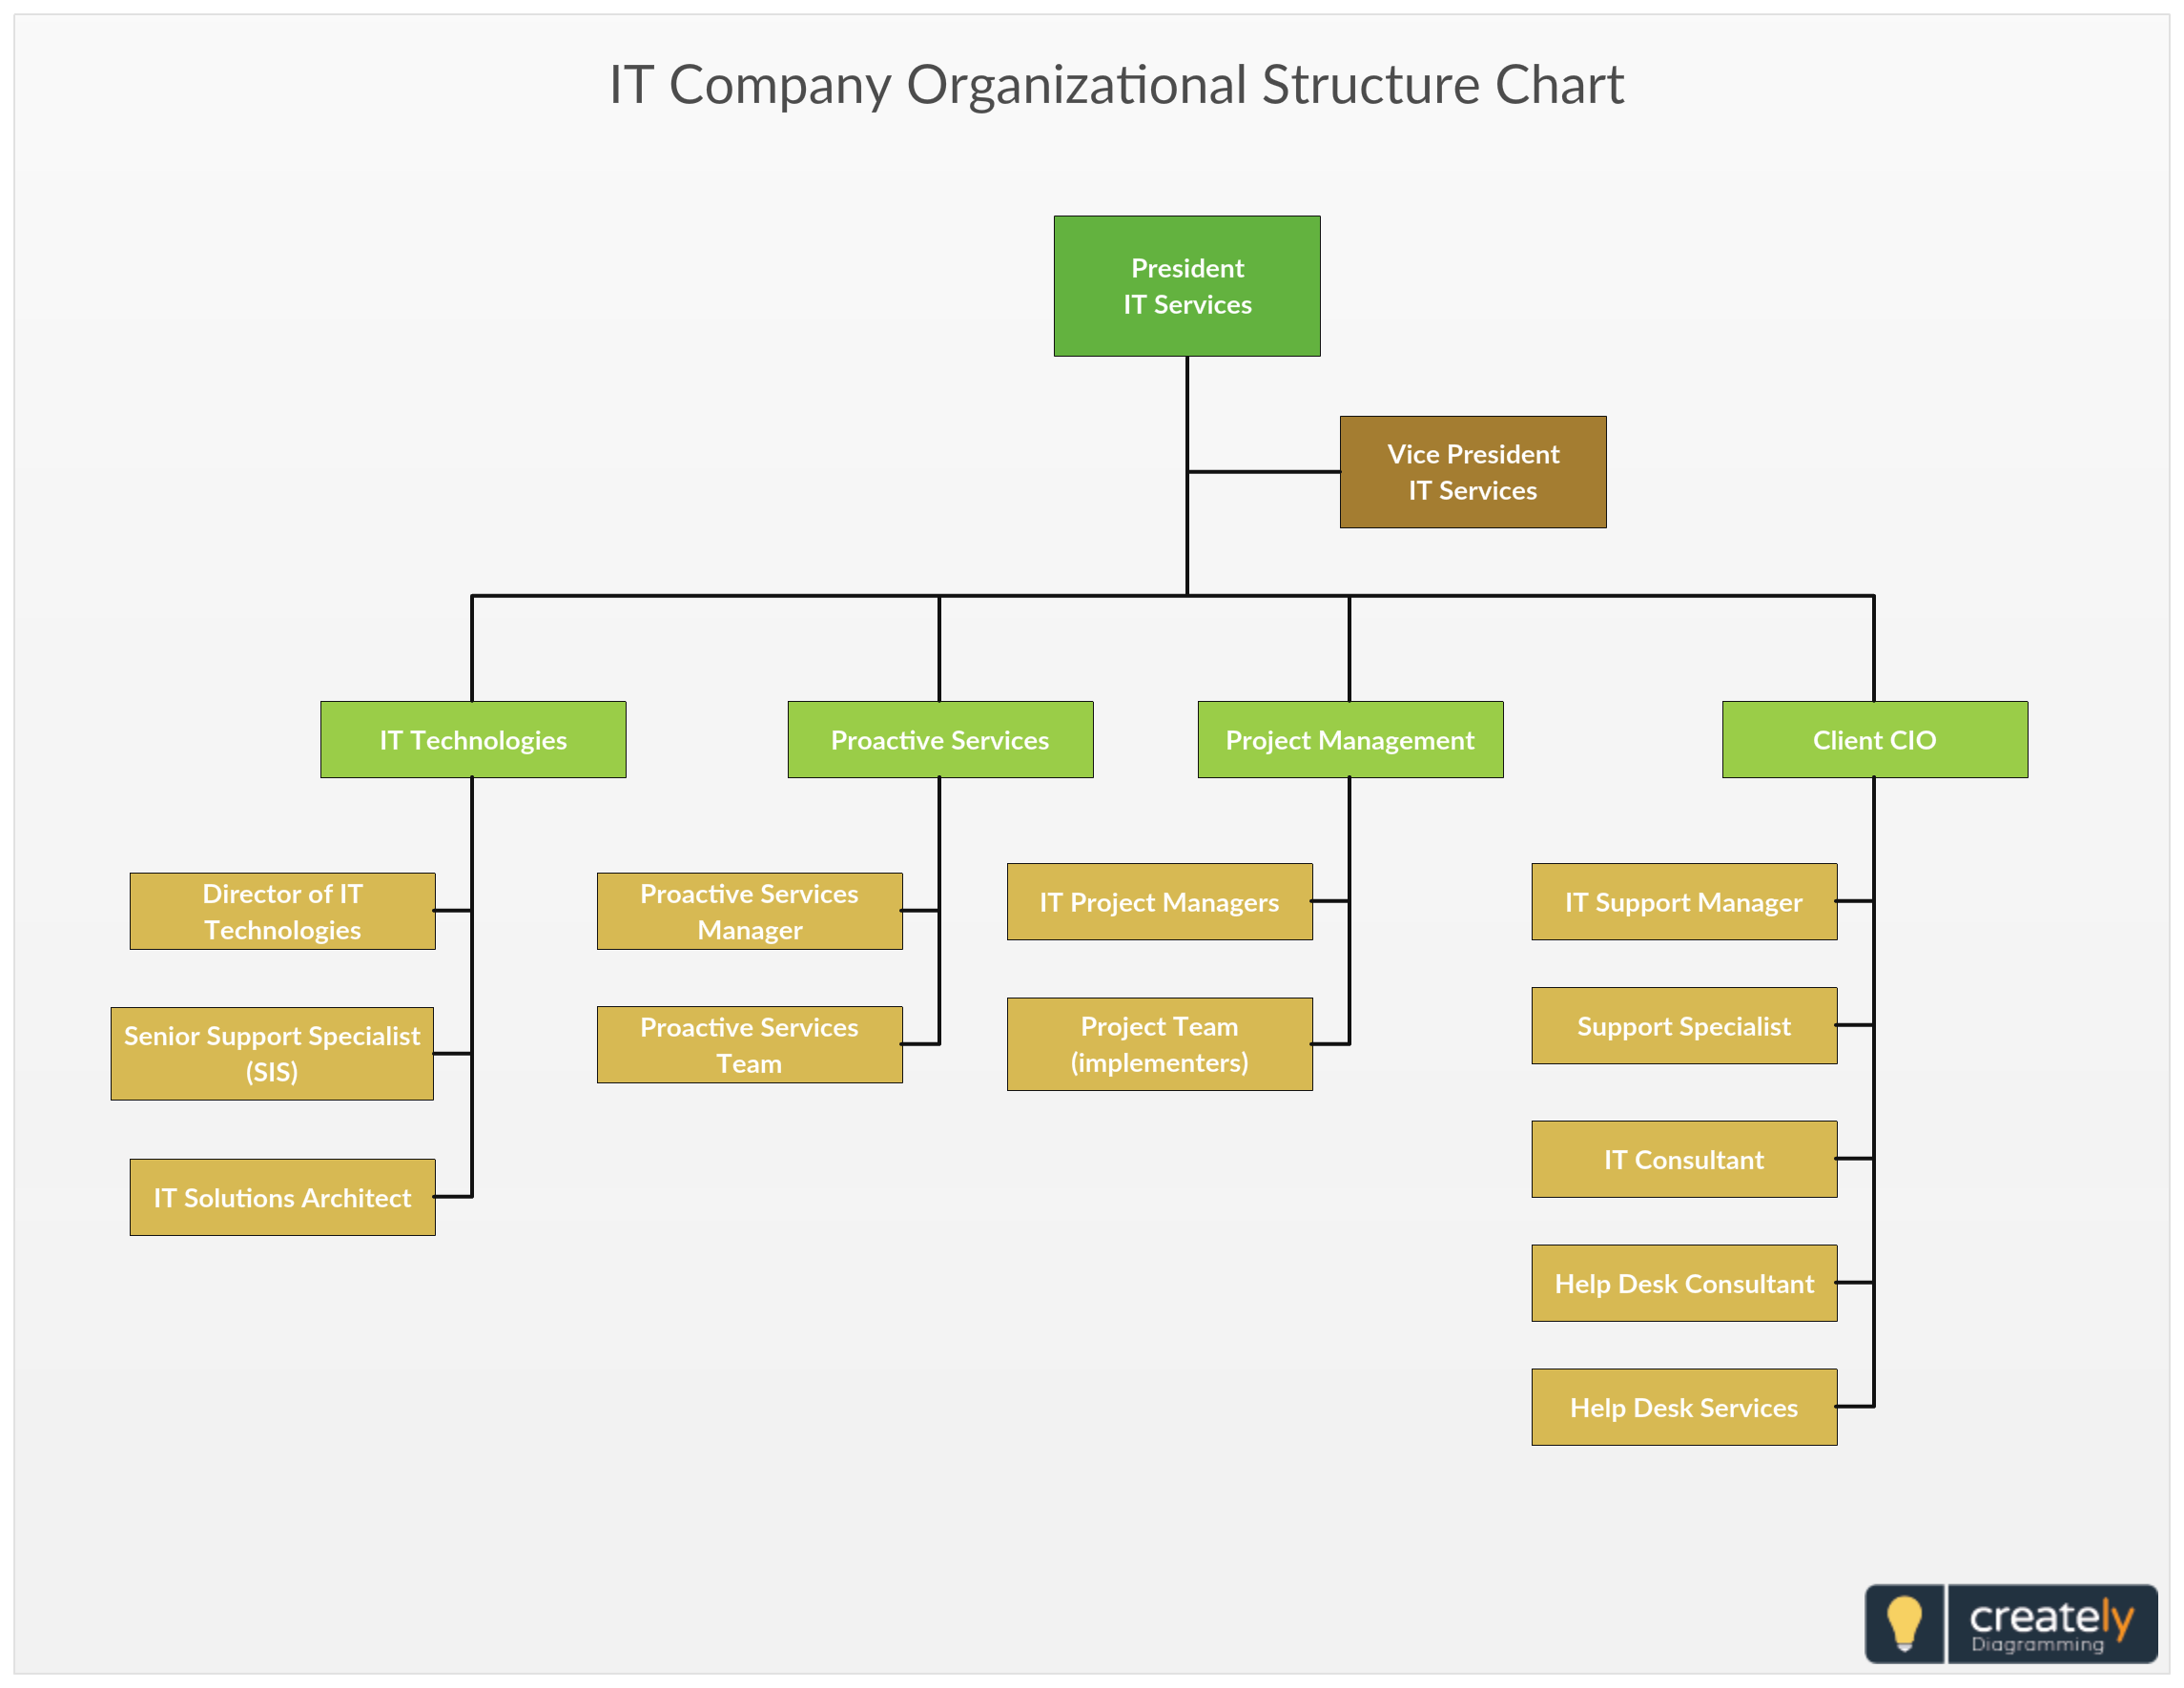 IT Company Organizational Structure Chart Editable org